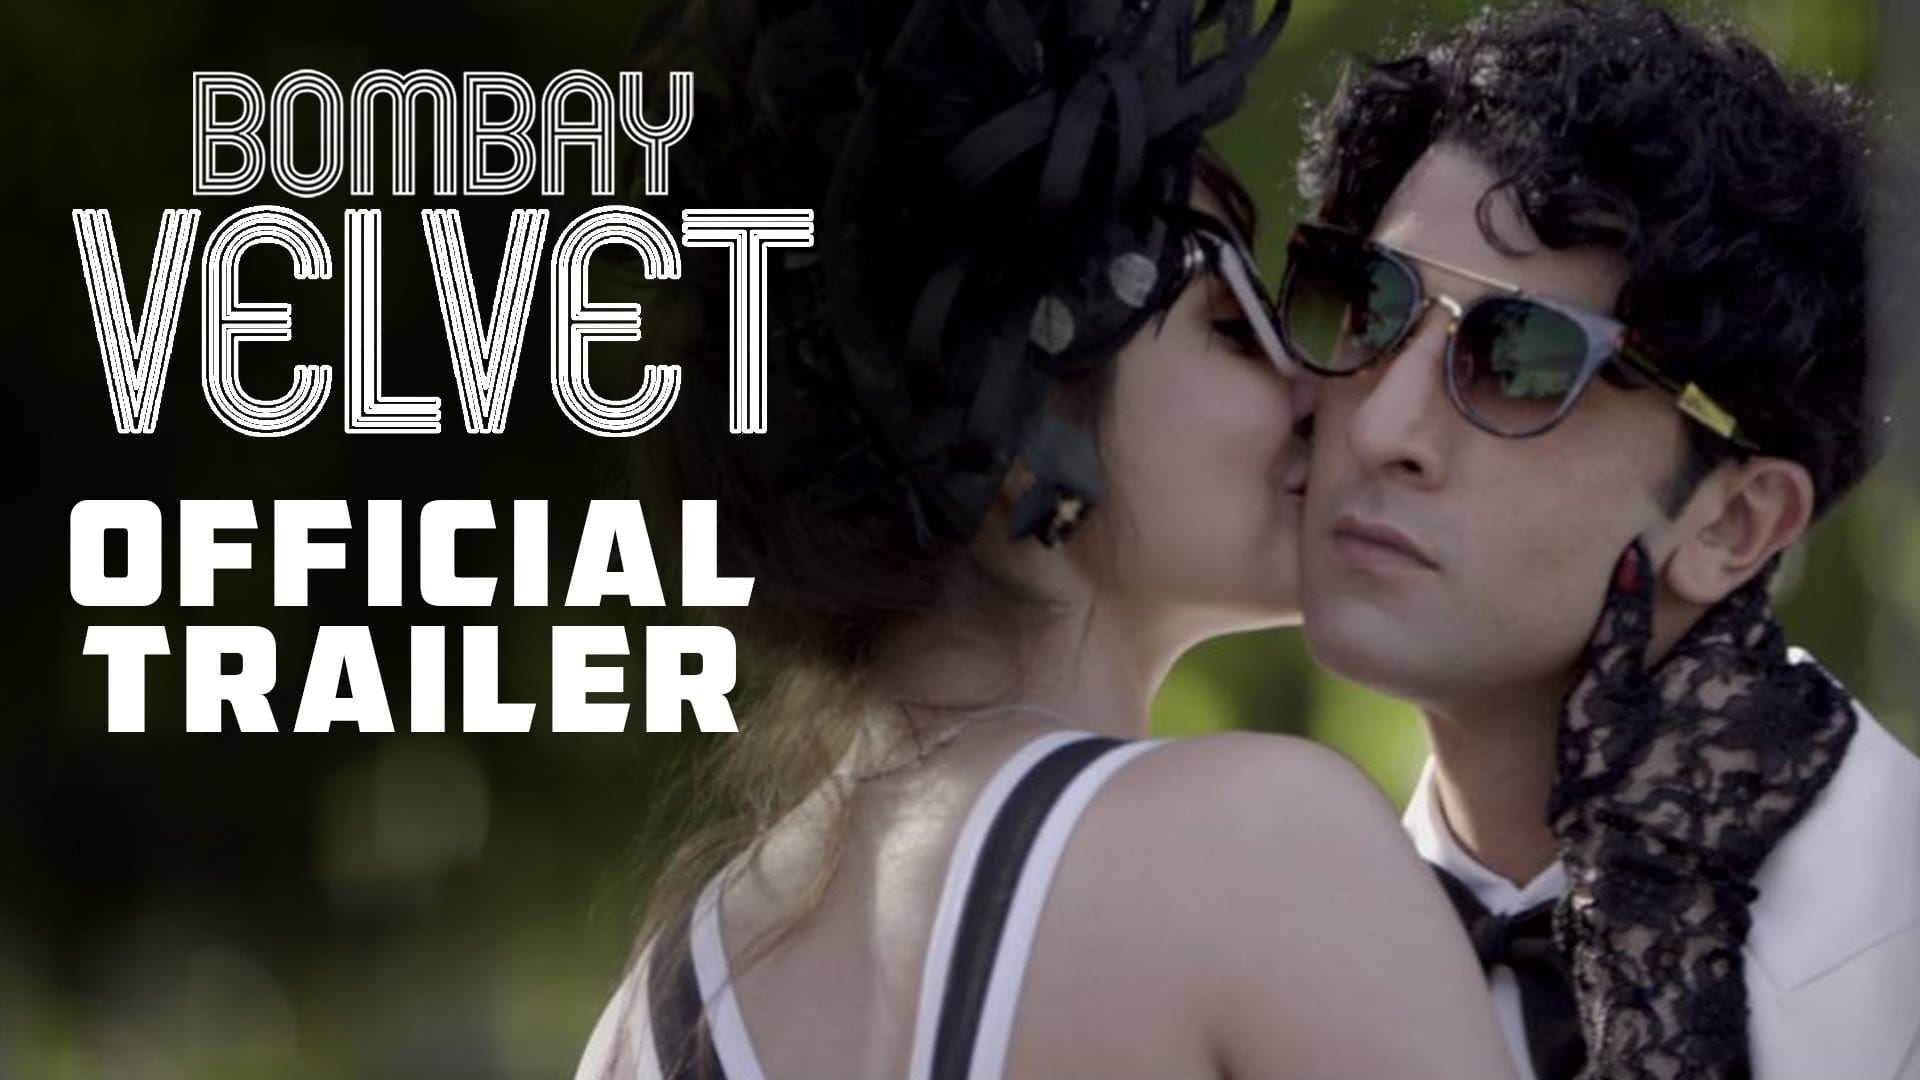 Bombay Velvet Trailer Review : Looks Authentic But Boring